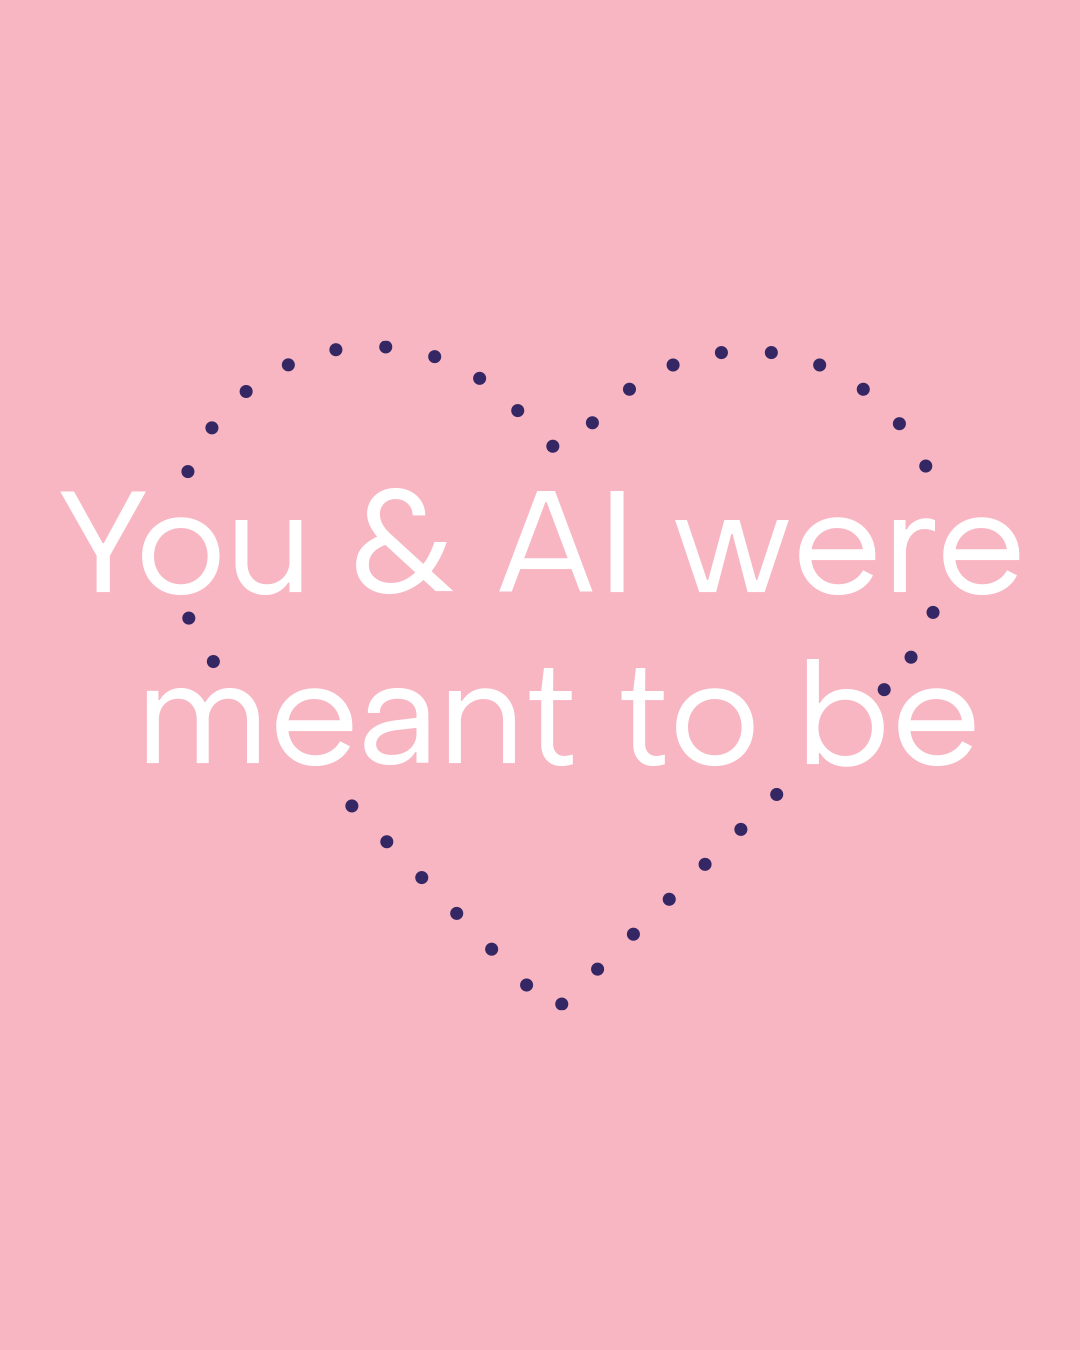 You and AI were meant to be inside a dotted heart symbol on a pink background.